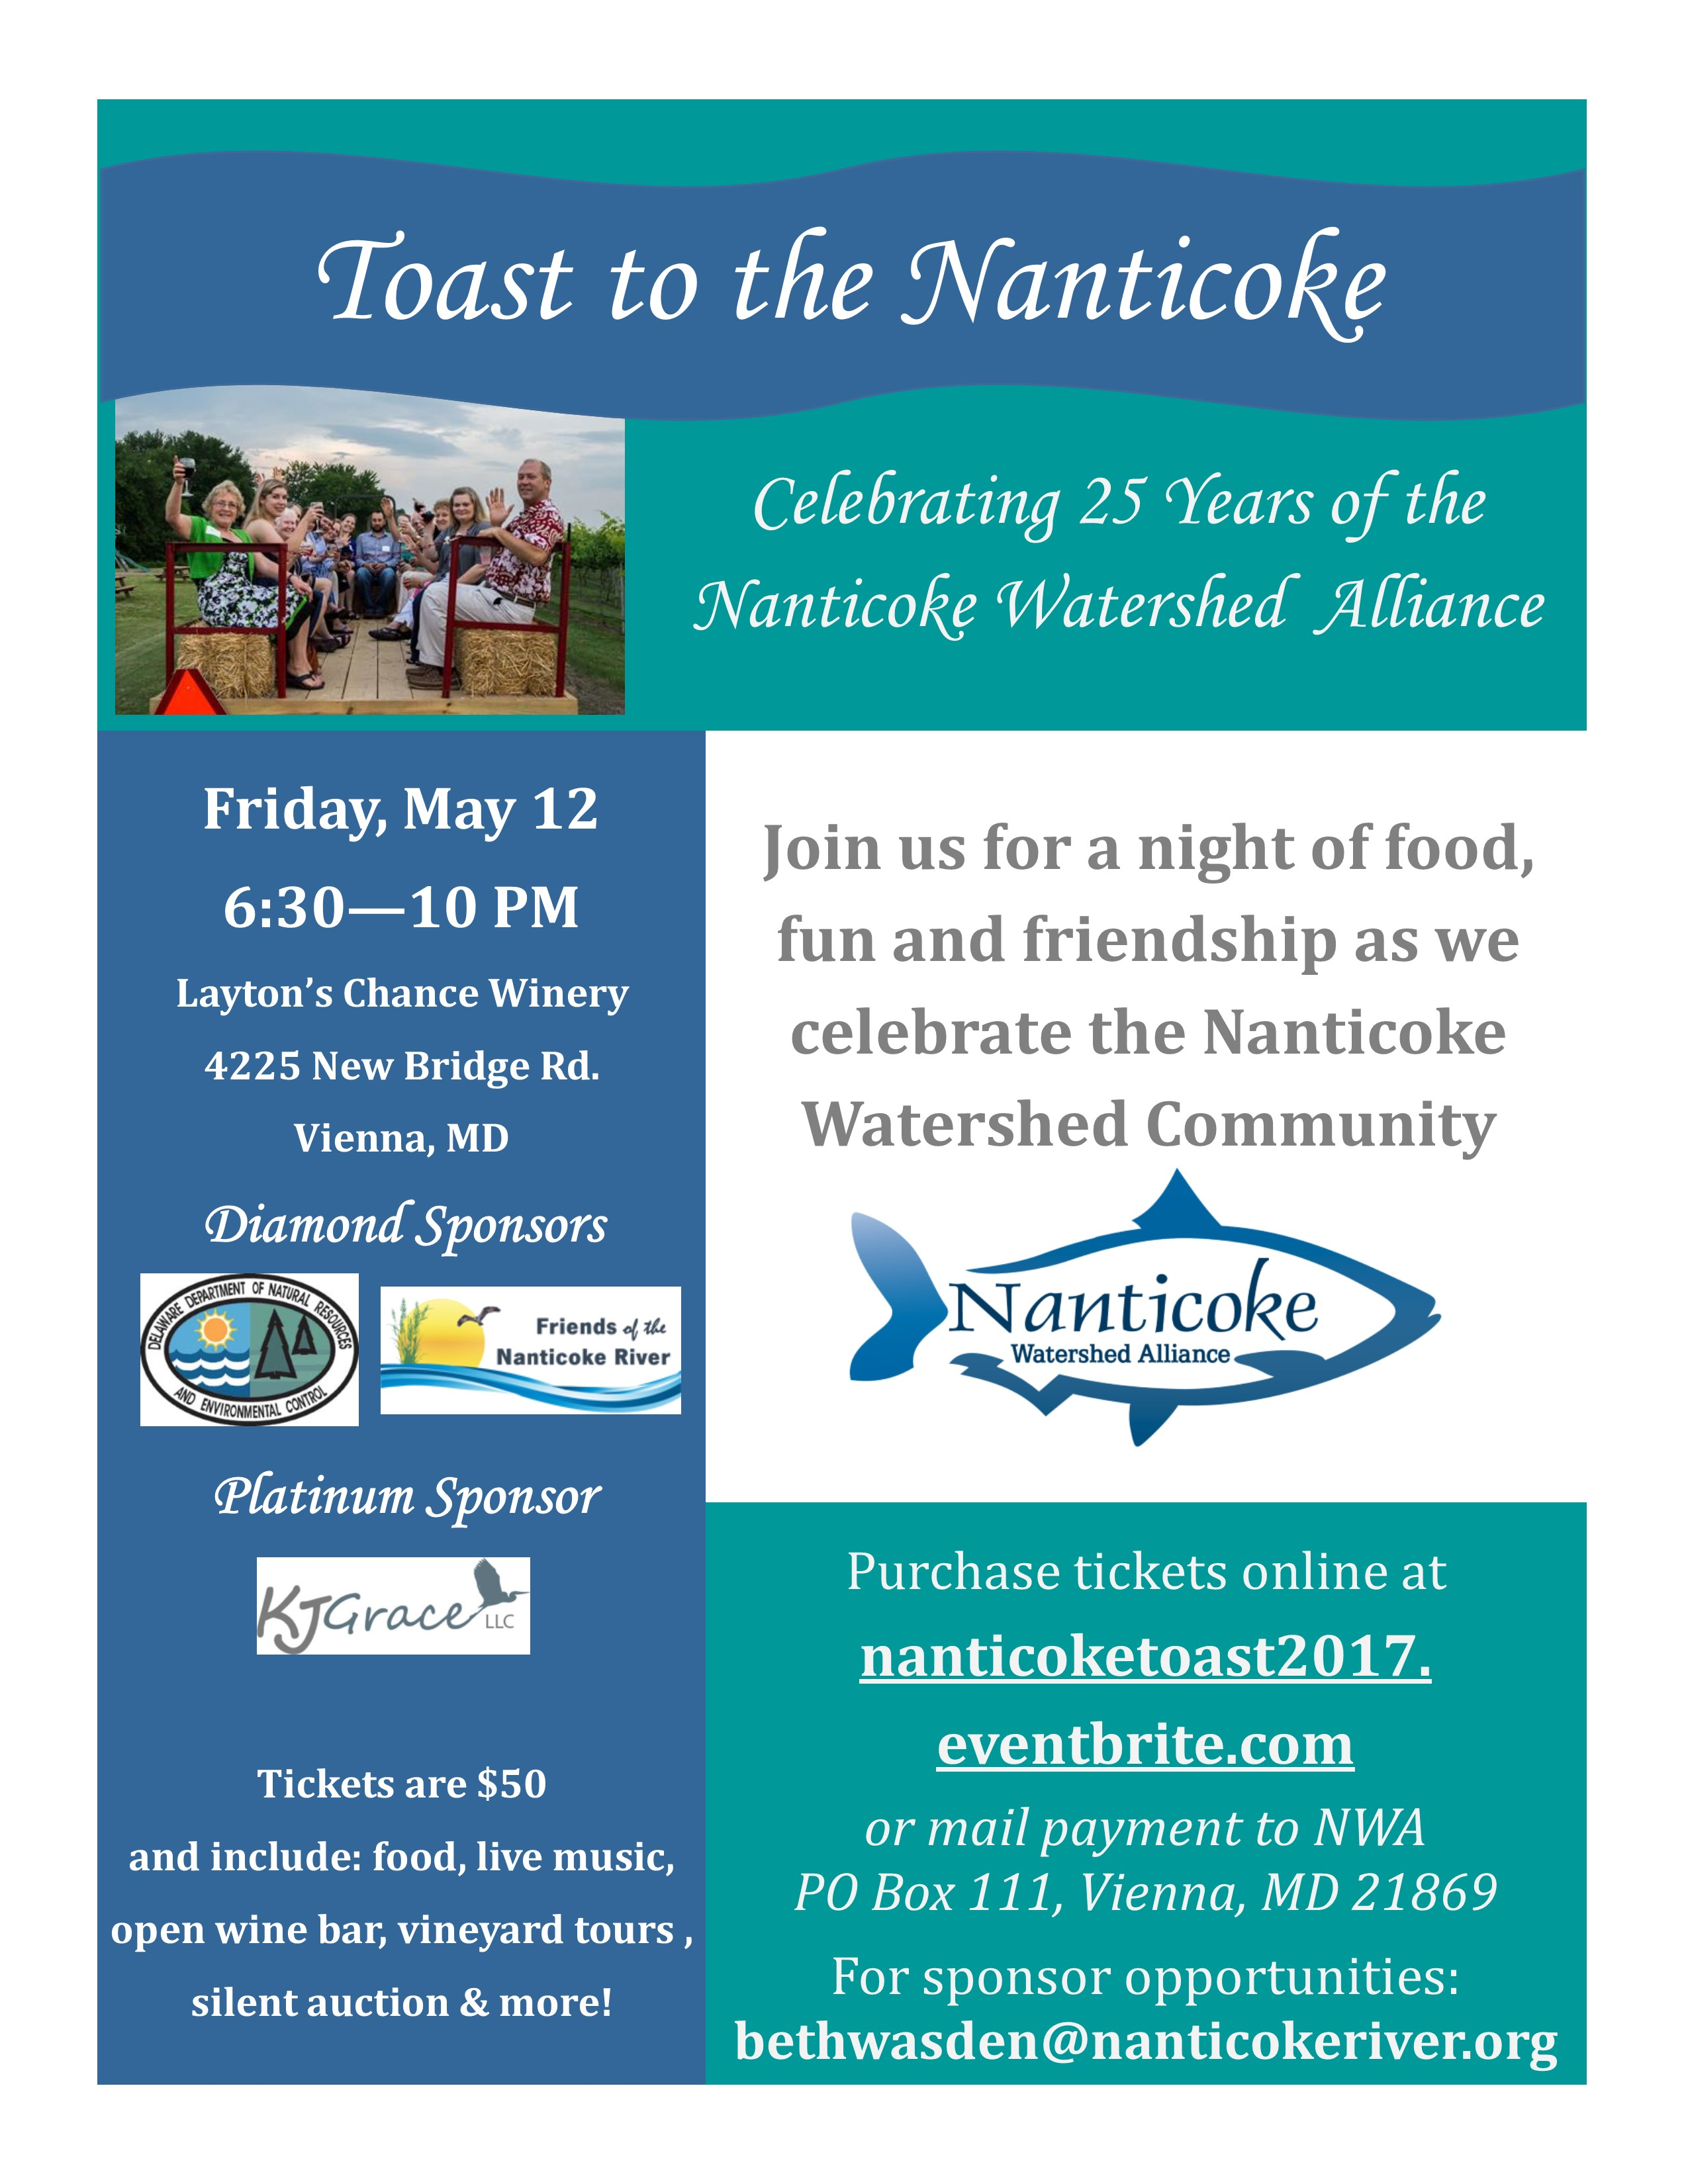 Toast to the Nanticoke Flyer with Sponsors